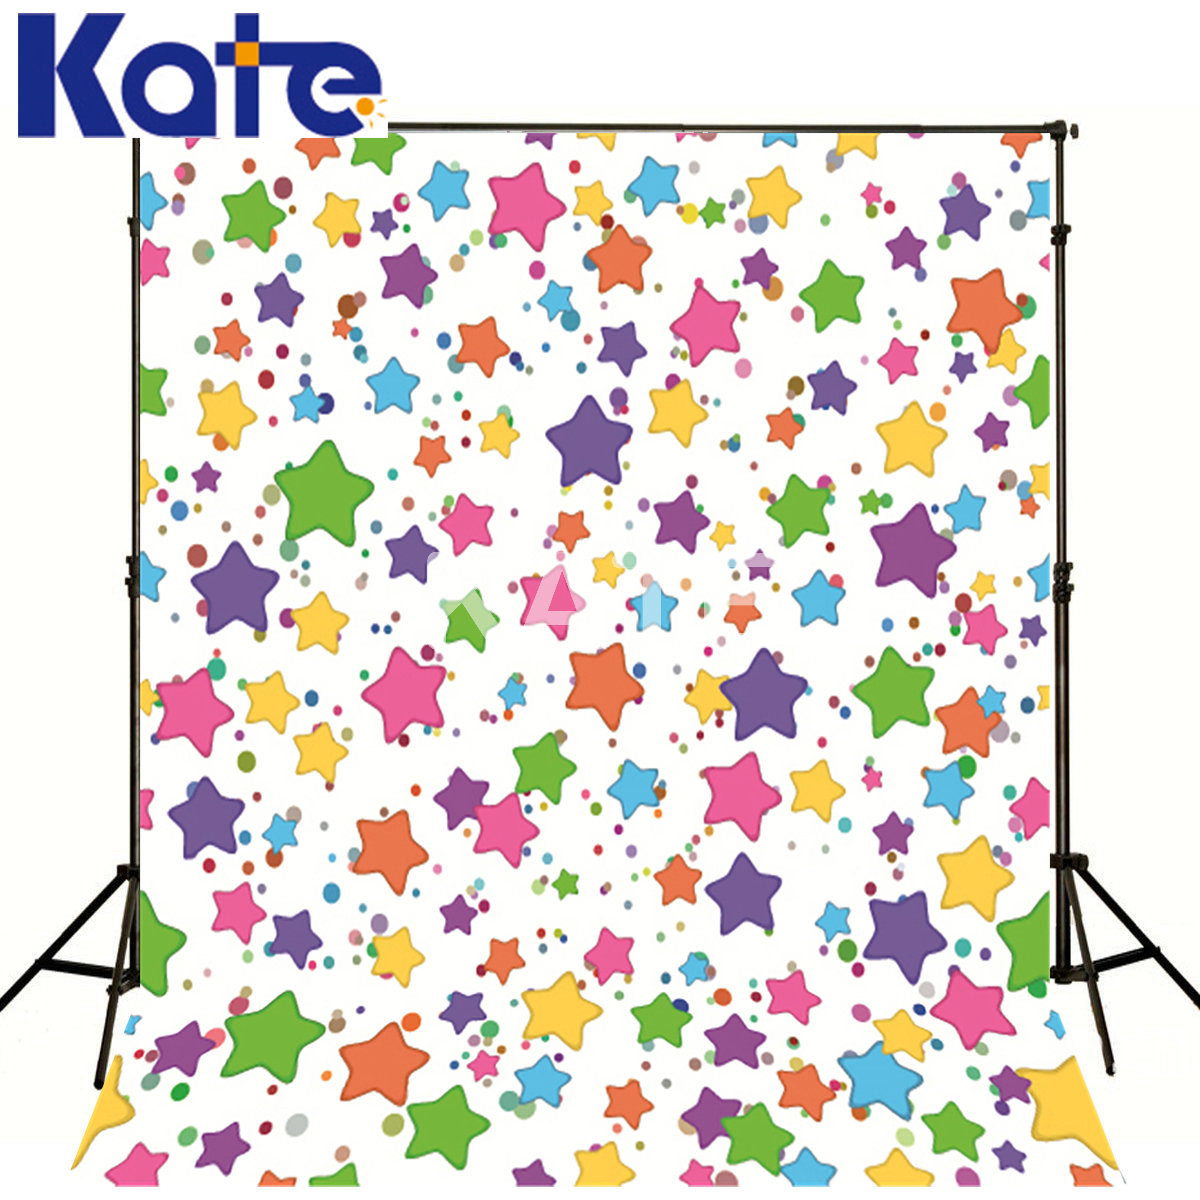 Kate Telones De Fondo Fotografia Liso Colorful Five-Pointed Star For Children Kate Backgrounds For Photo Studio<br>